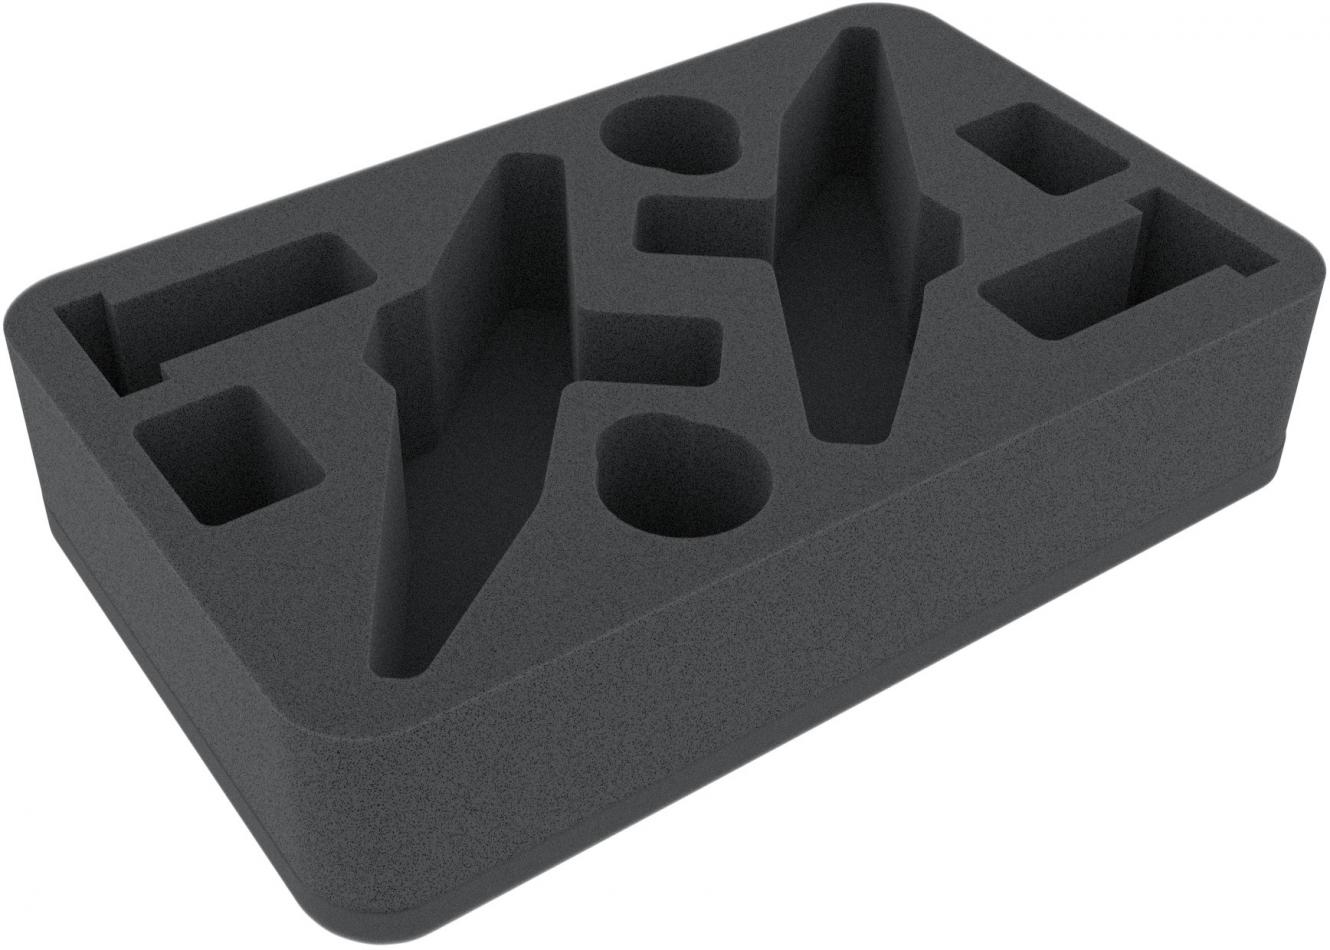 HSMEAW060BO 60 mm foam tray for Star Wars Armada Profundity 2pcs.